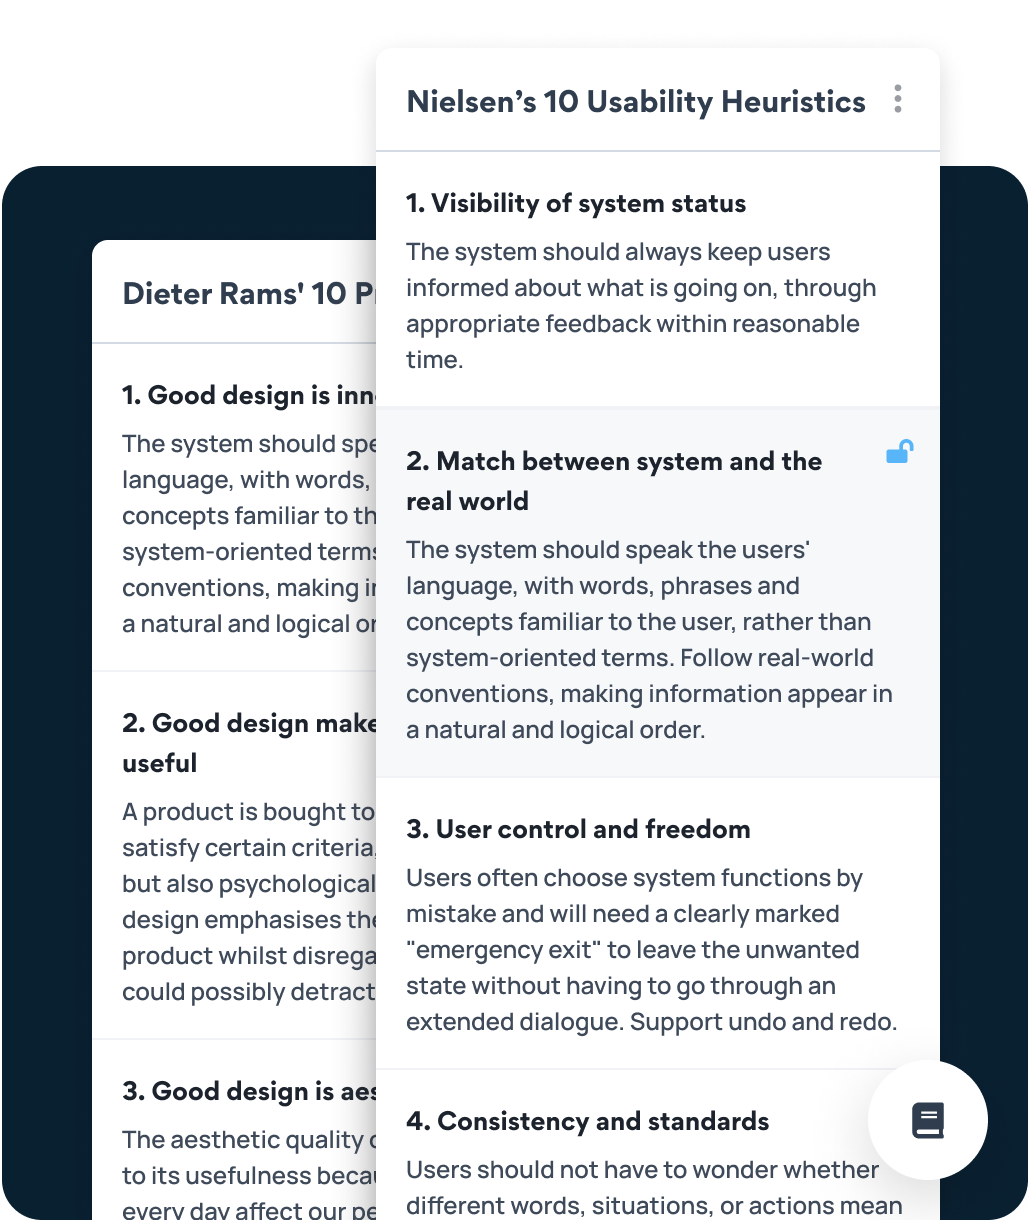 Heuristic systems, and guidelines for remote collaboration.